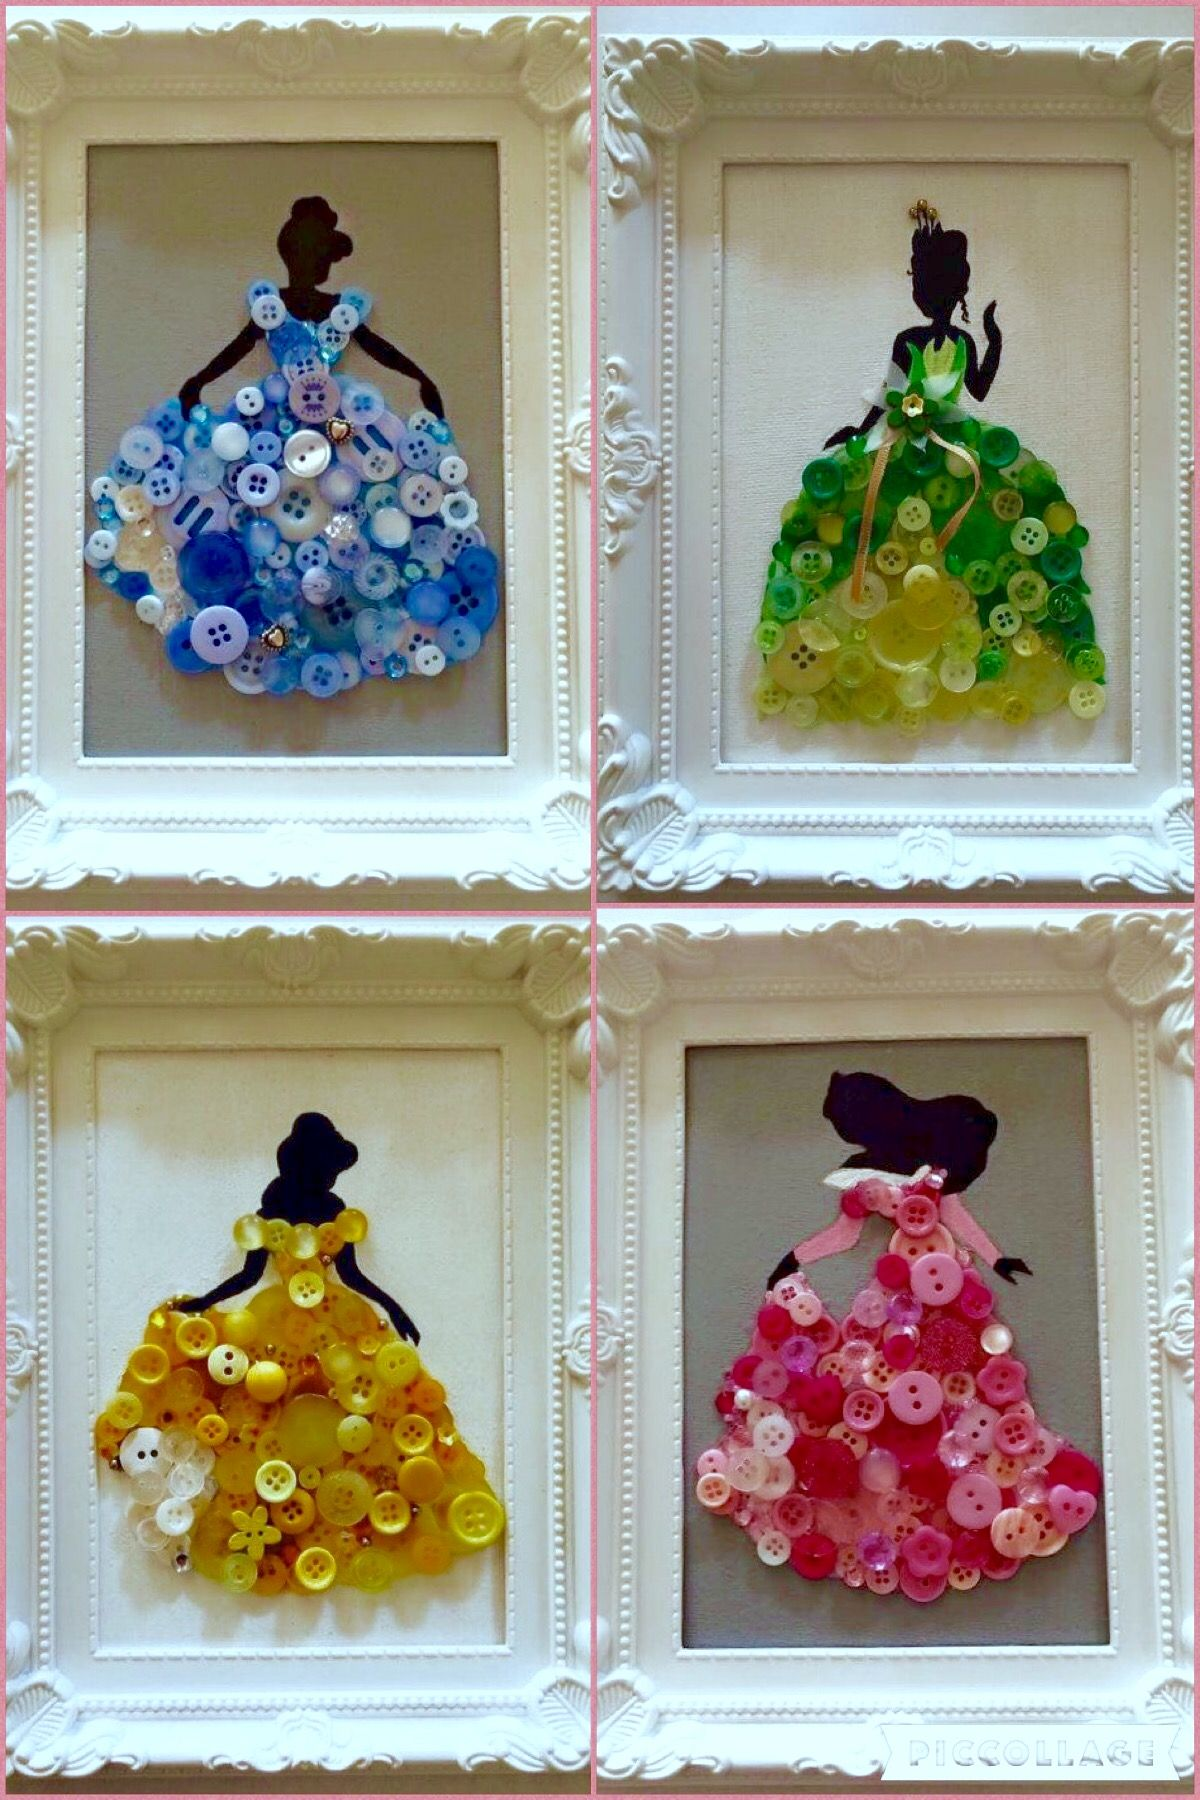 Cuadros Infantiles Disney Diy Disney Princess Button Art Arbolgenialogico Pinterest